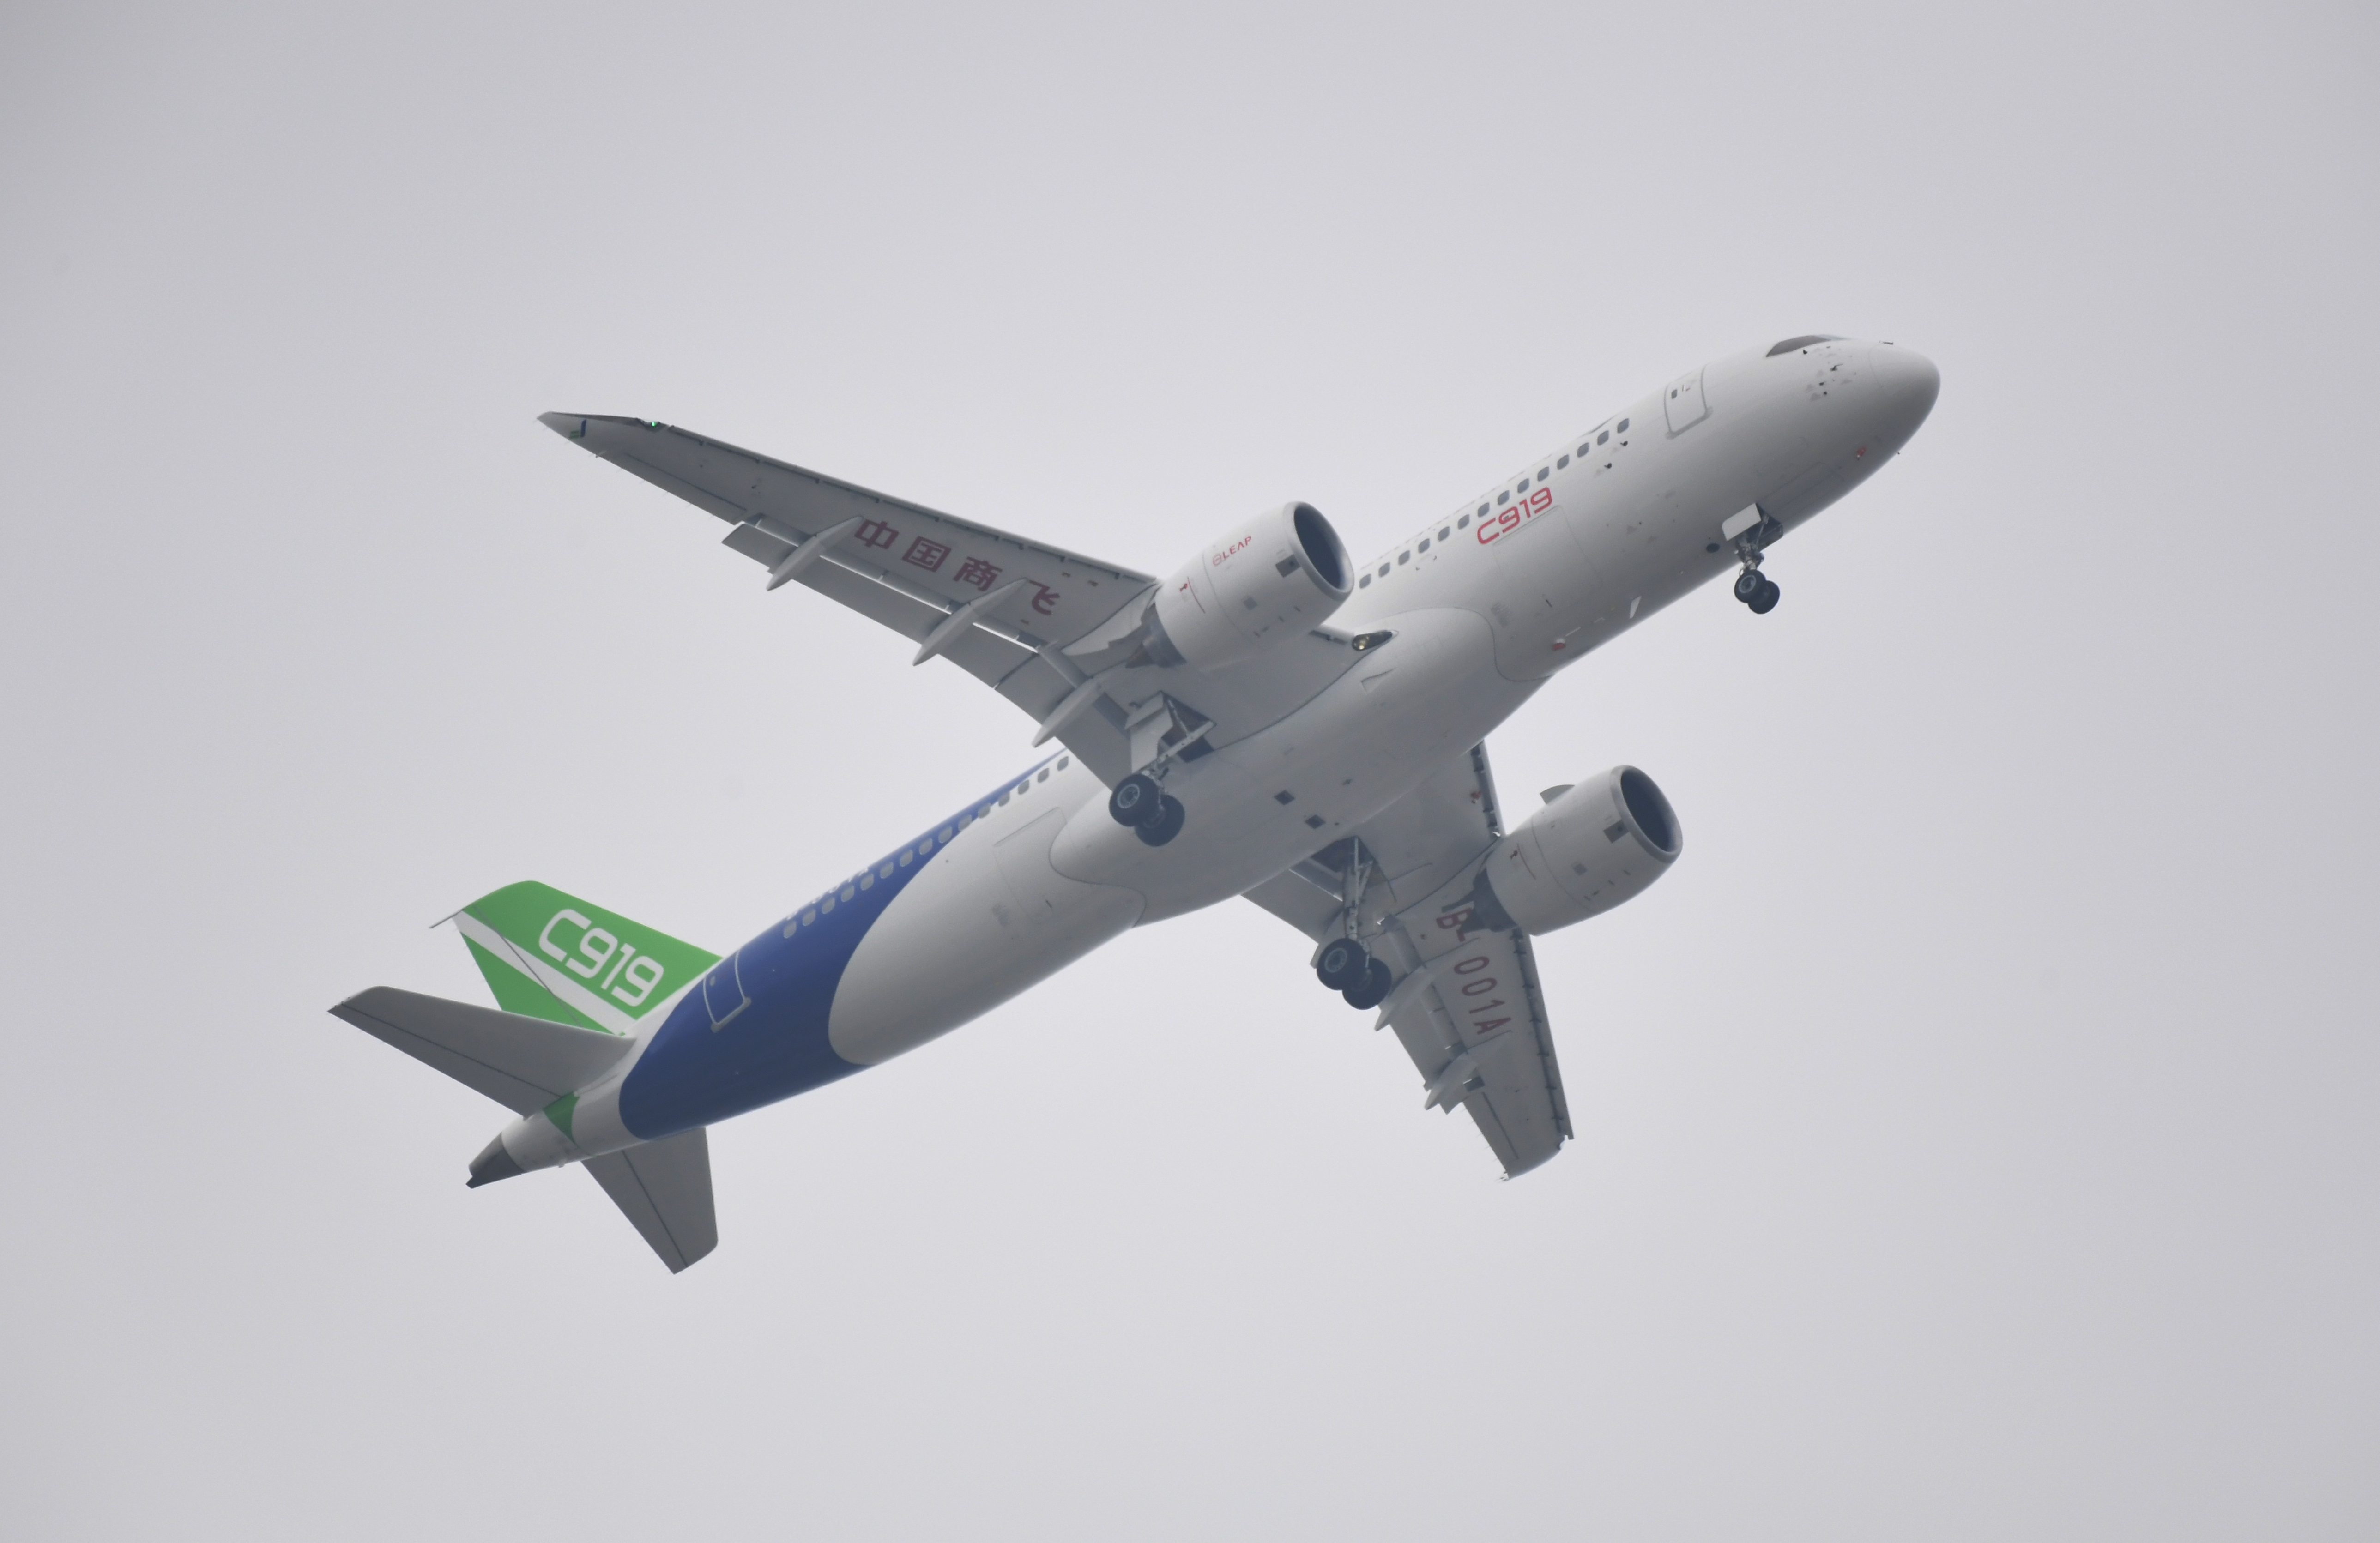 China's home-grown C919 passenger jet takes off from Pudong International Airport in Shanghai on May 5, 2017.